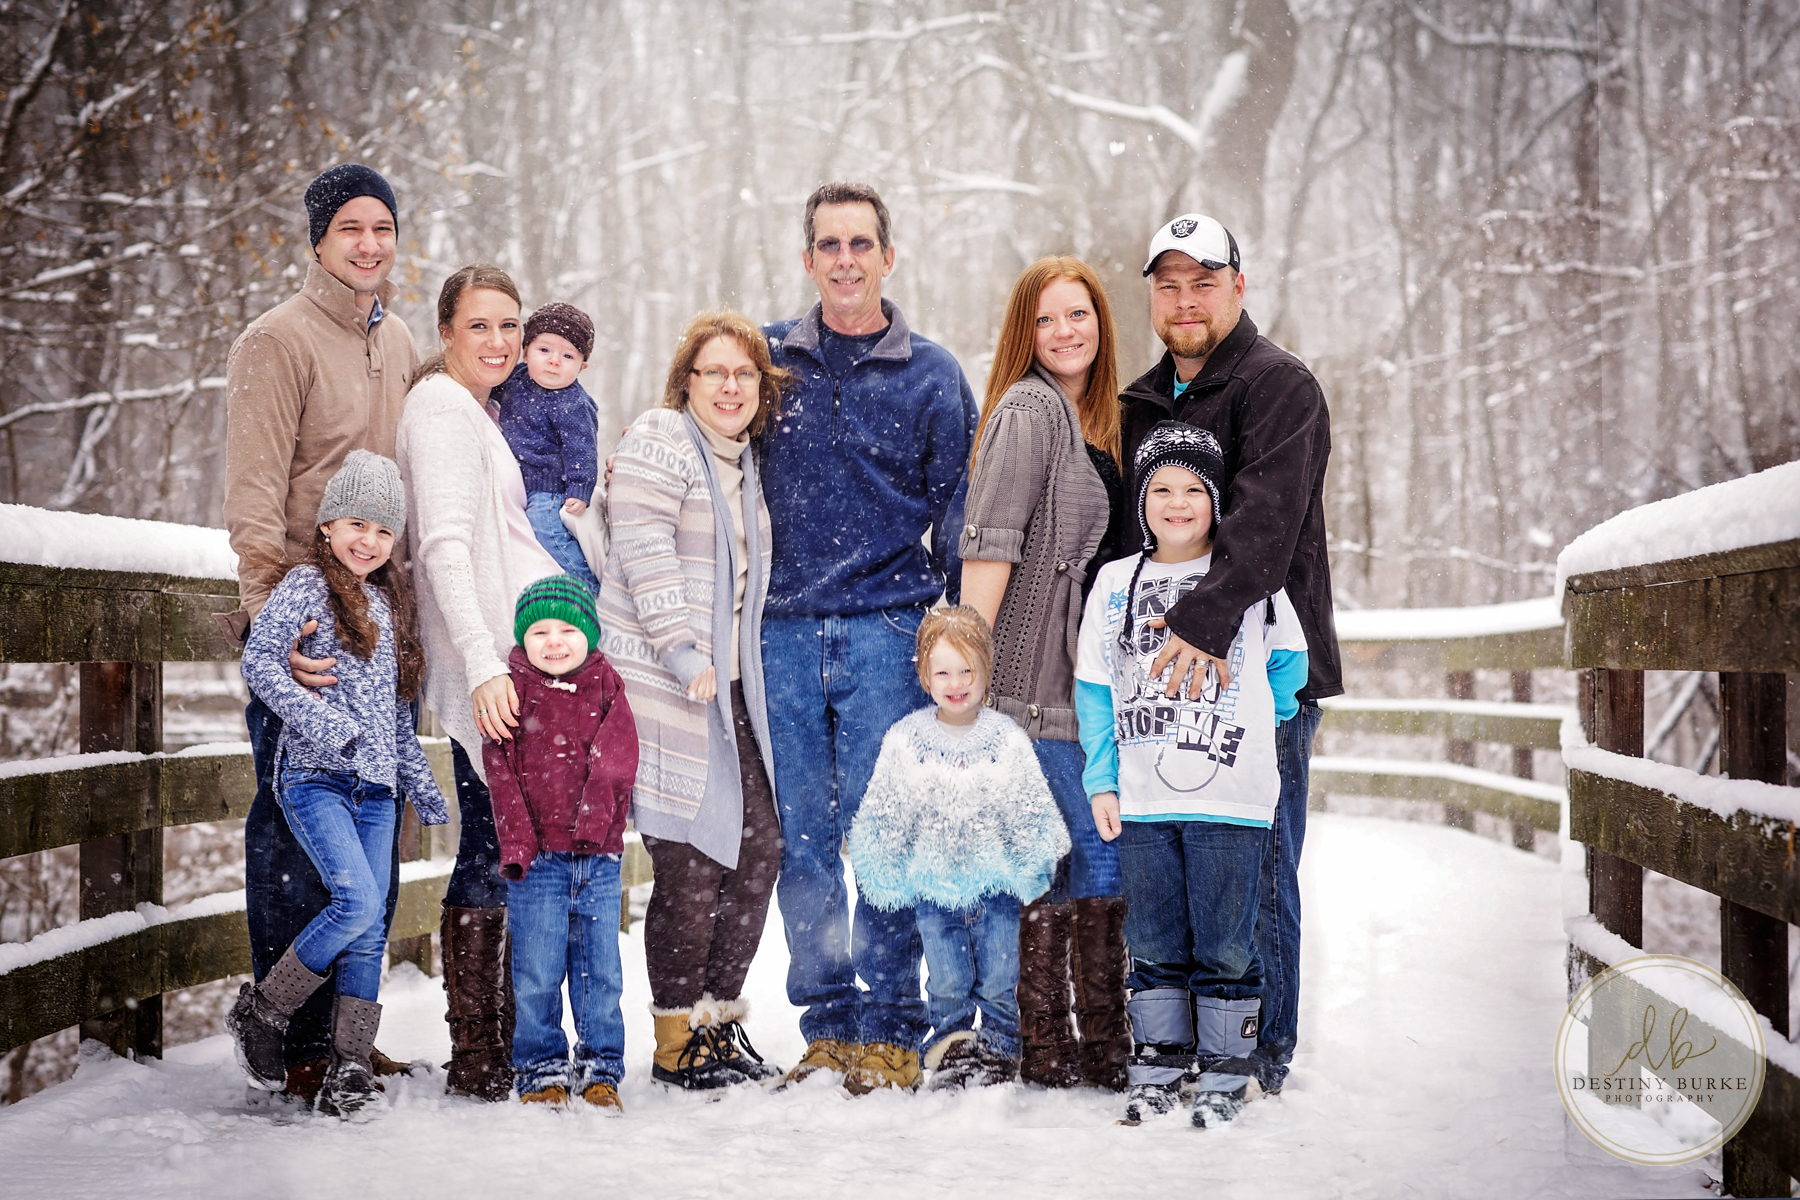 Snowy Family Portrait, Siblings, Parents, Kids, Children, Winter, Photography Rochester, NY